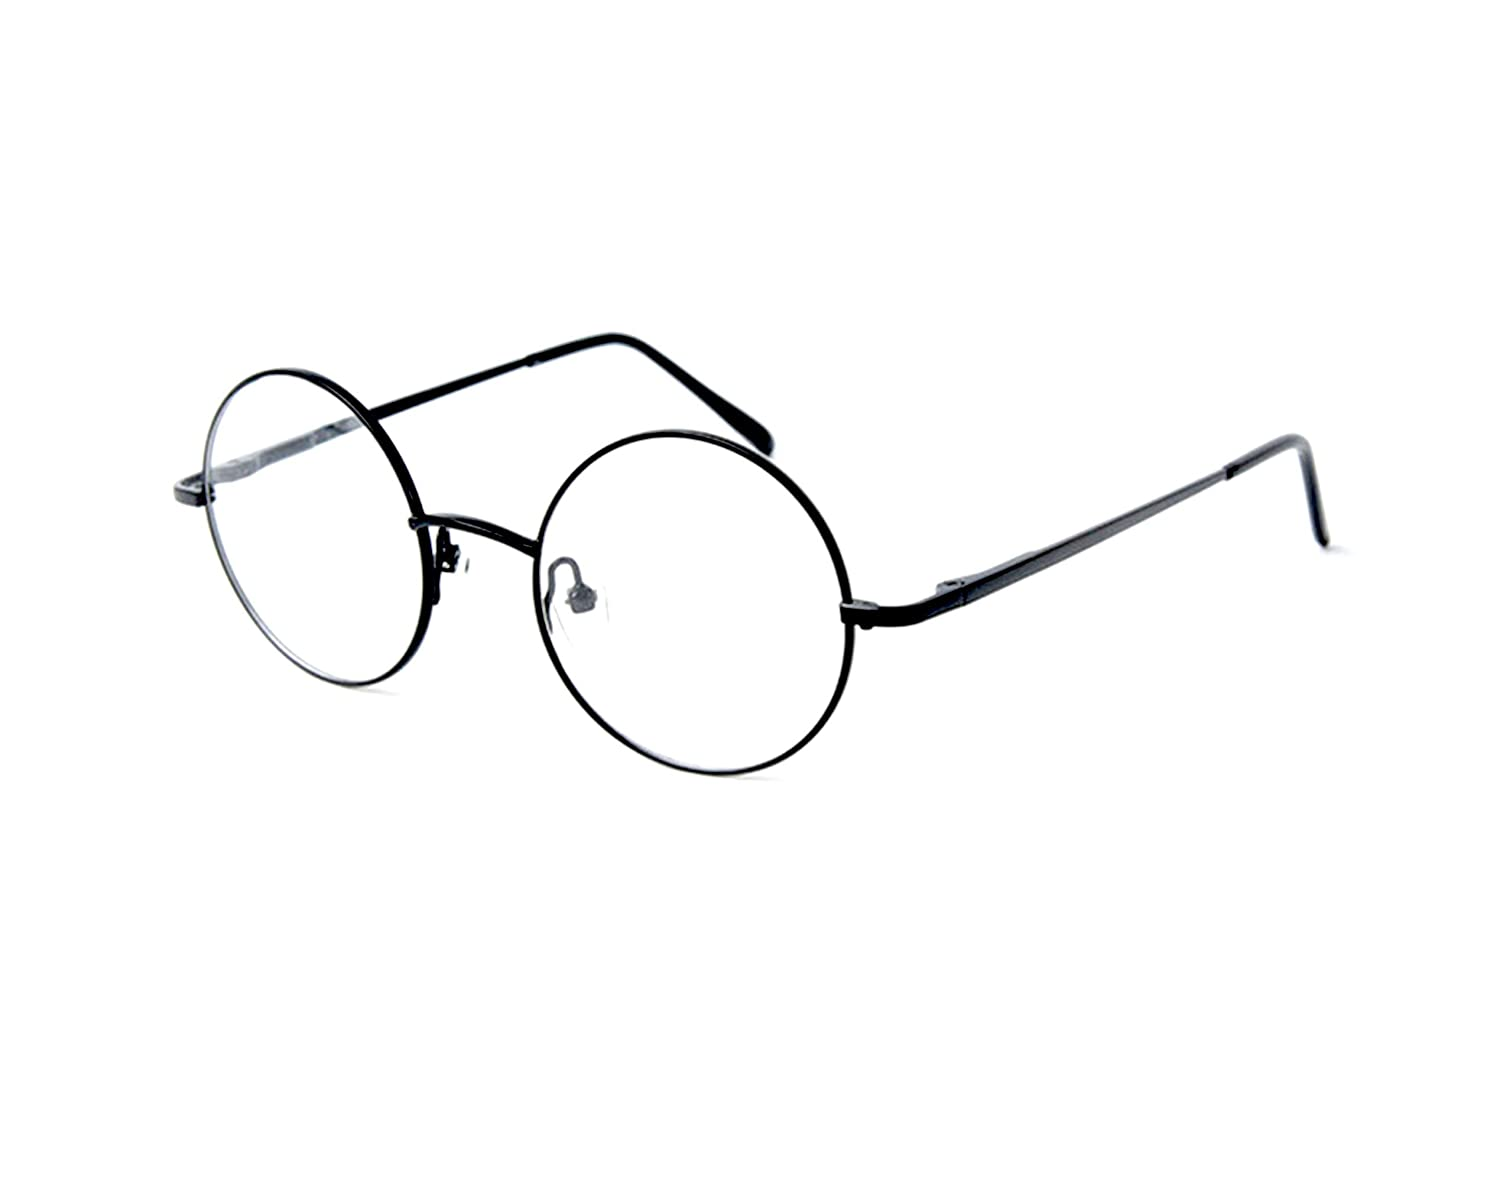 e0db6cfc0e87 Amazon.com  Big Mo s Toys Wizard Glasses - Round Wire Costume Glasses  Accessories for Dress Up - 1 Pair  Clothing